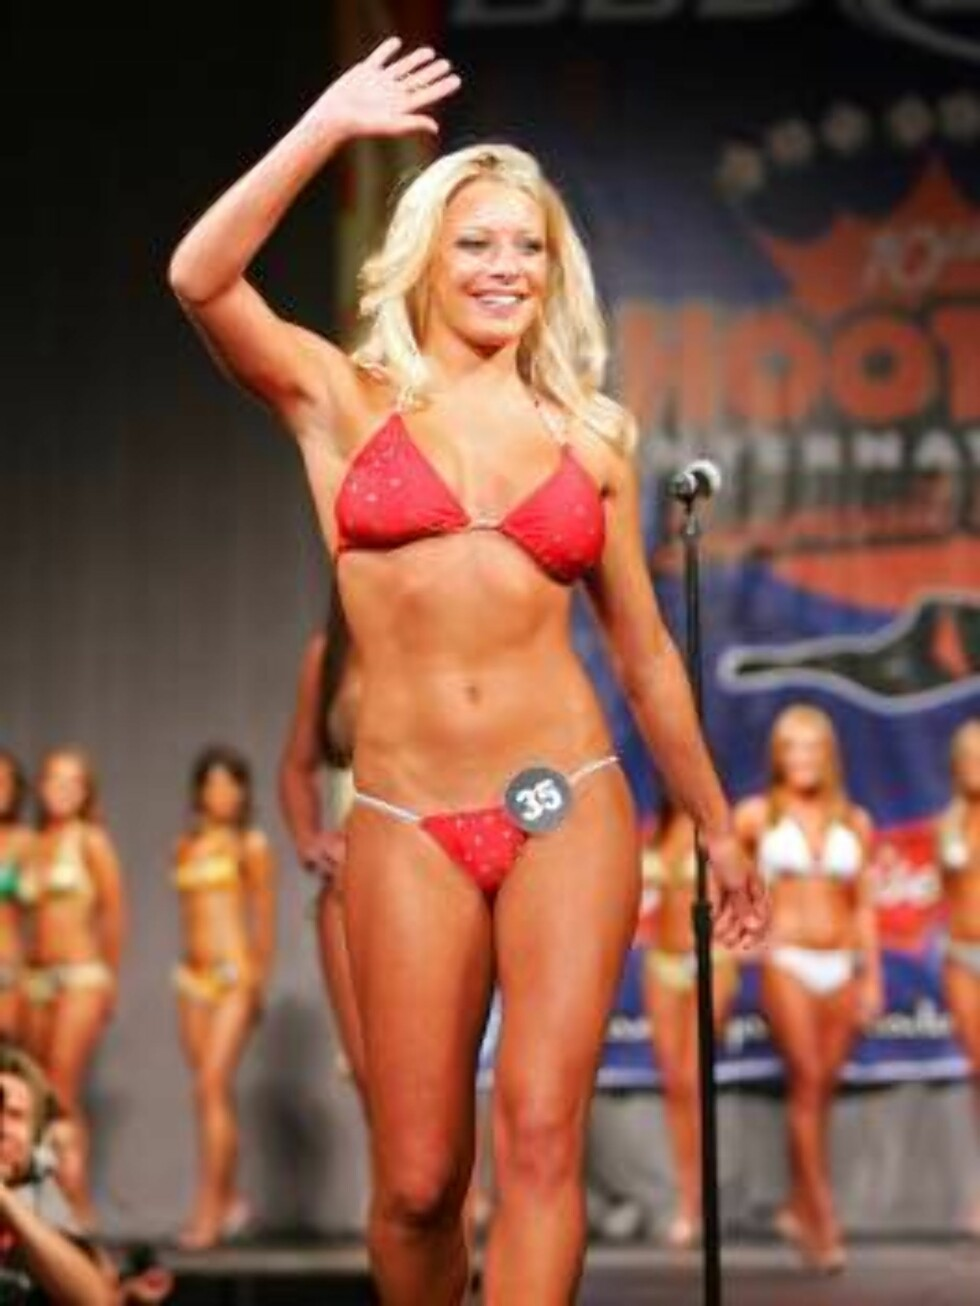 LAS VEGAS - JULY 24:  Jessica Pribanic of Ohio competes in a preliminary preview of the 10th annual Hooters International Swimsuit Pageant at the Aladdin Casino & Resort June 24, 2006 in Las Vegas, Nevada. Over 120 Hooters girls who work in one of the com Foto: All Over Press